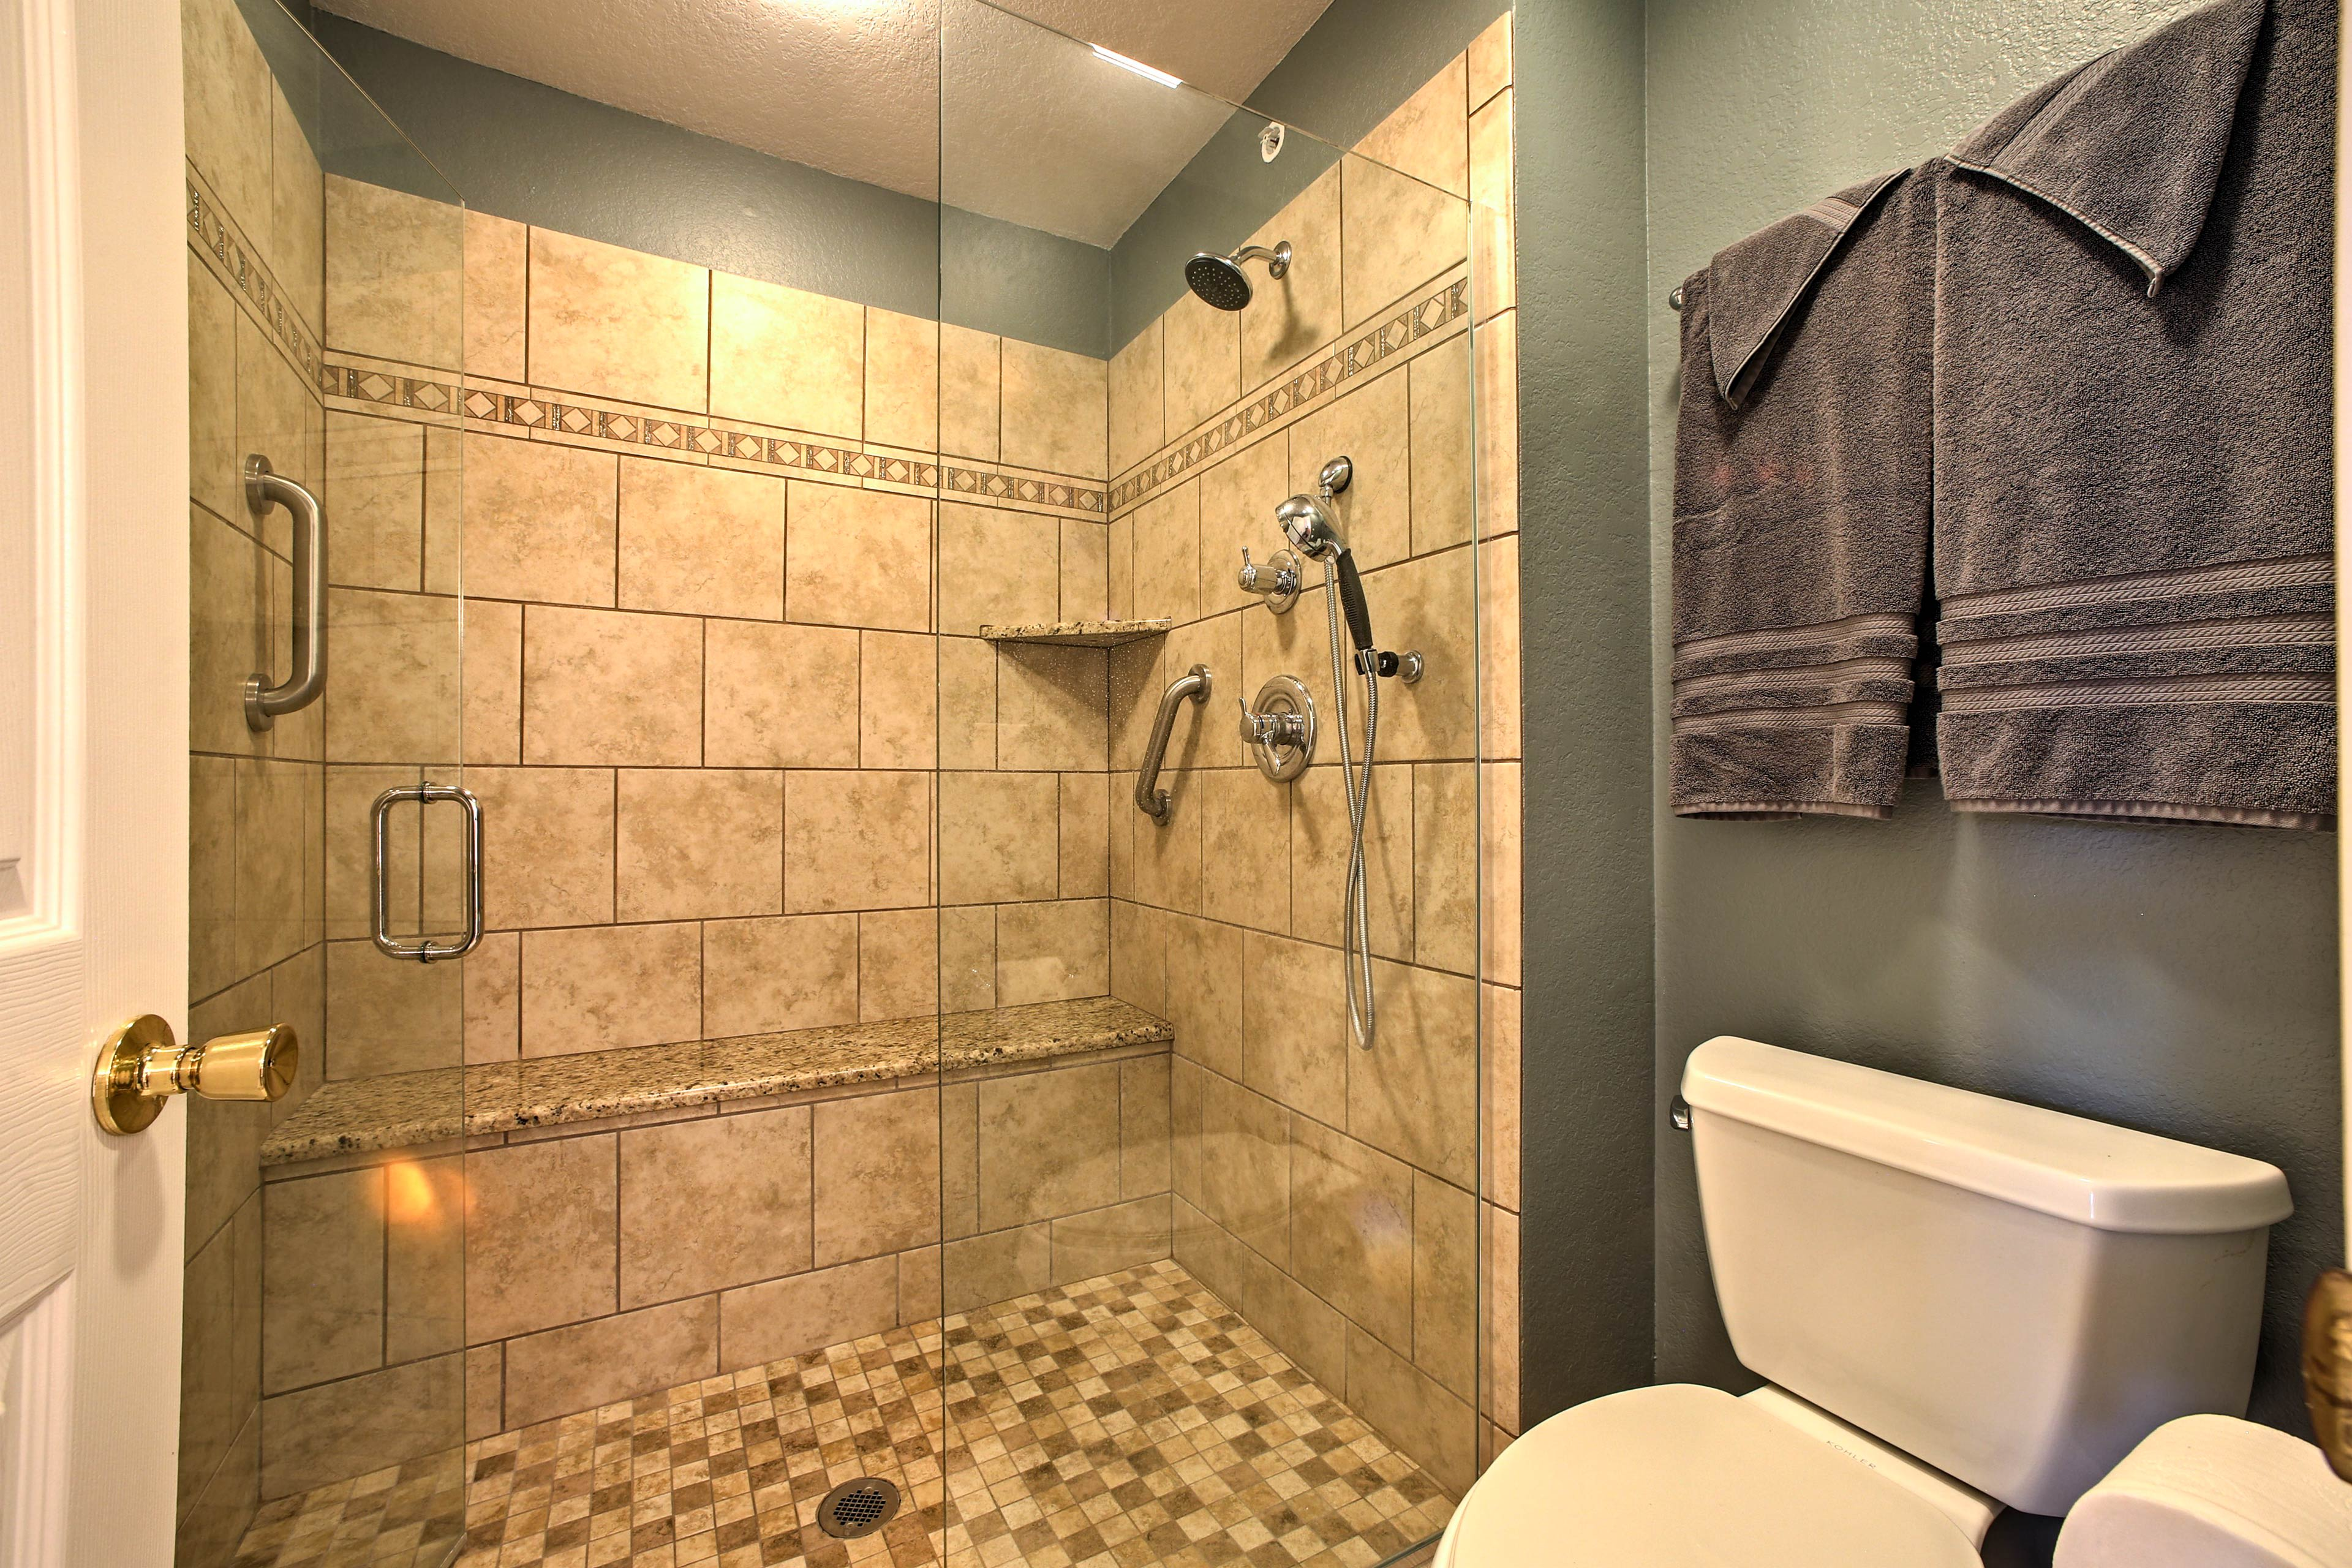 You'll love this oversized, tiled walk-in shower!